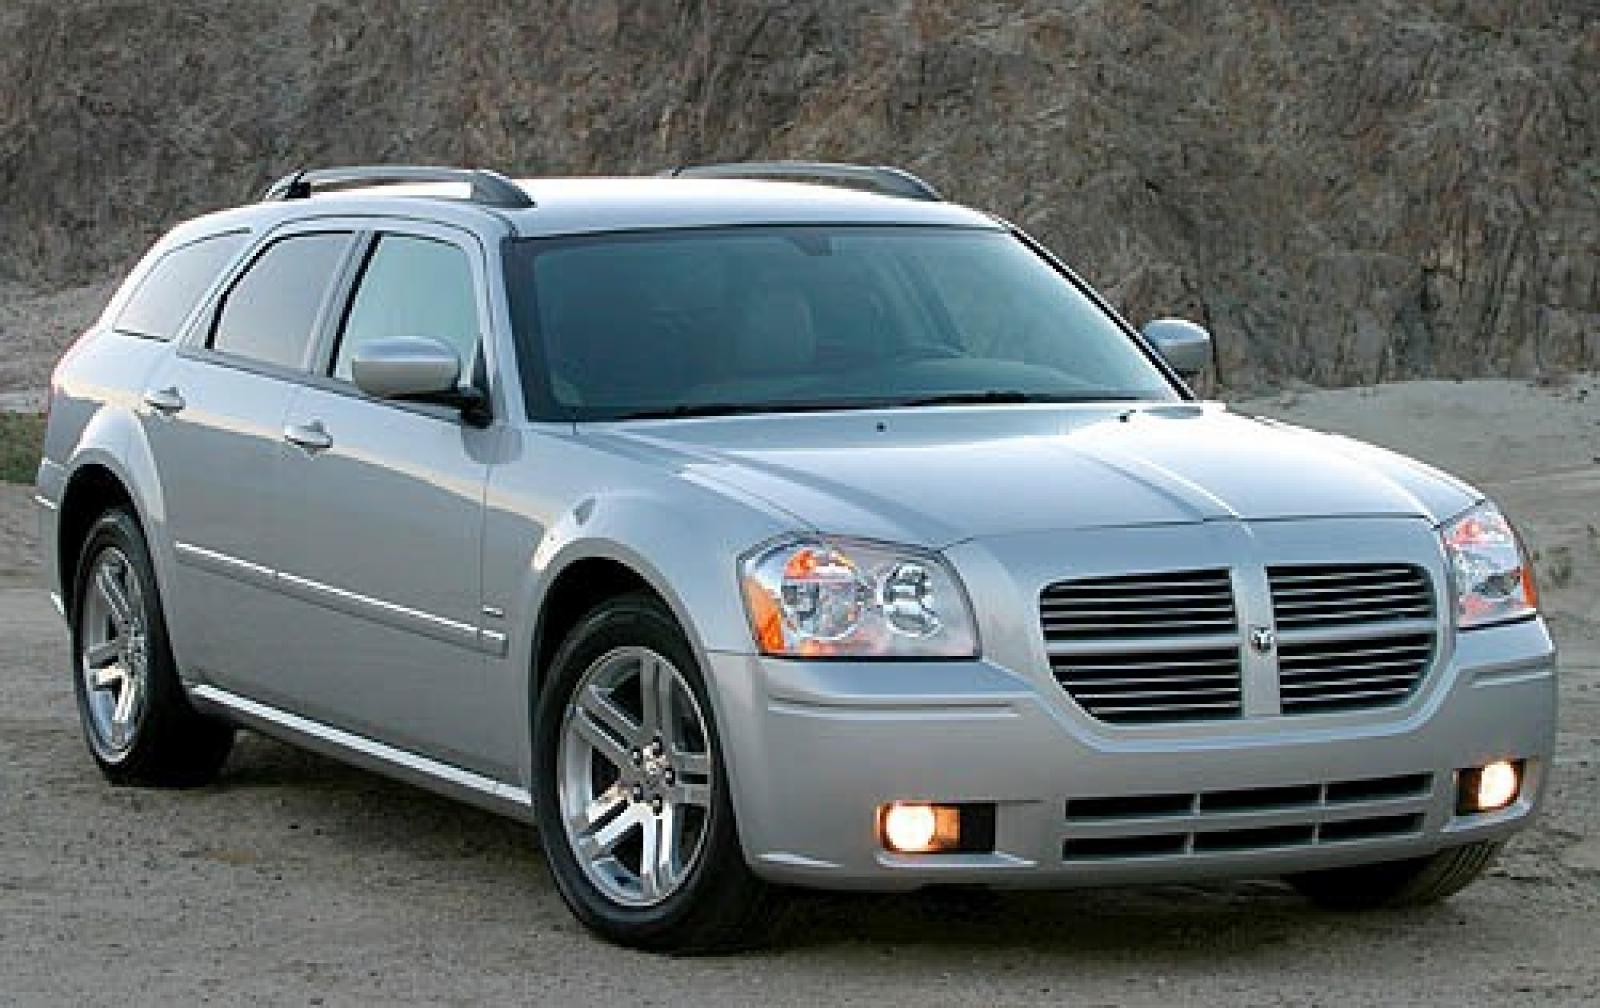 2007 dodge magnum information and photos zombiedrive. Black Bedroom Furniture Sets. Home Design Ideas